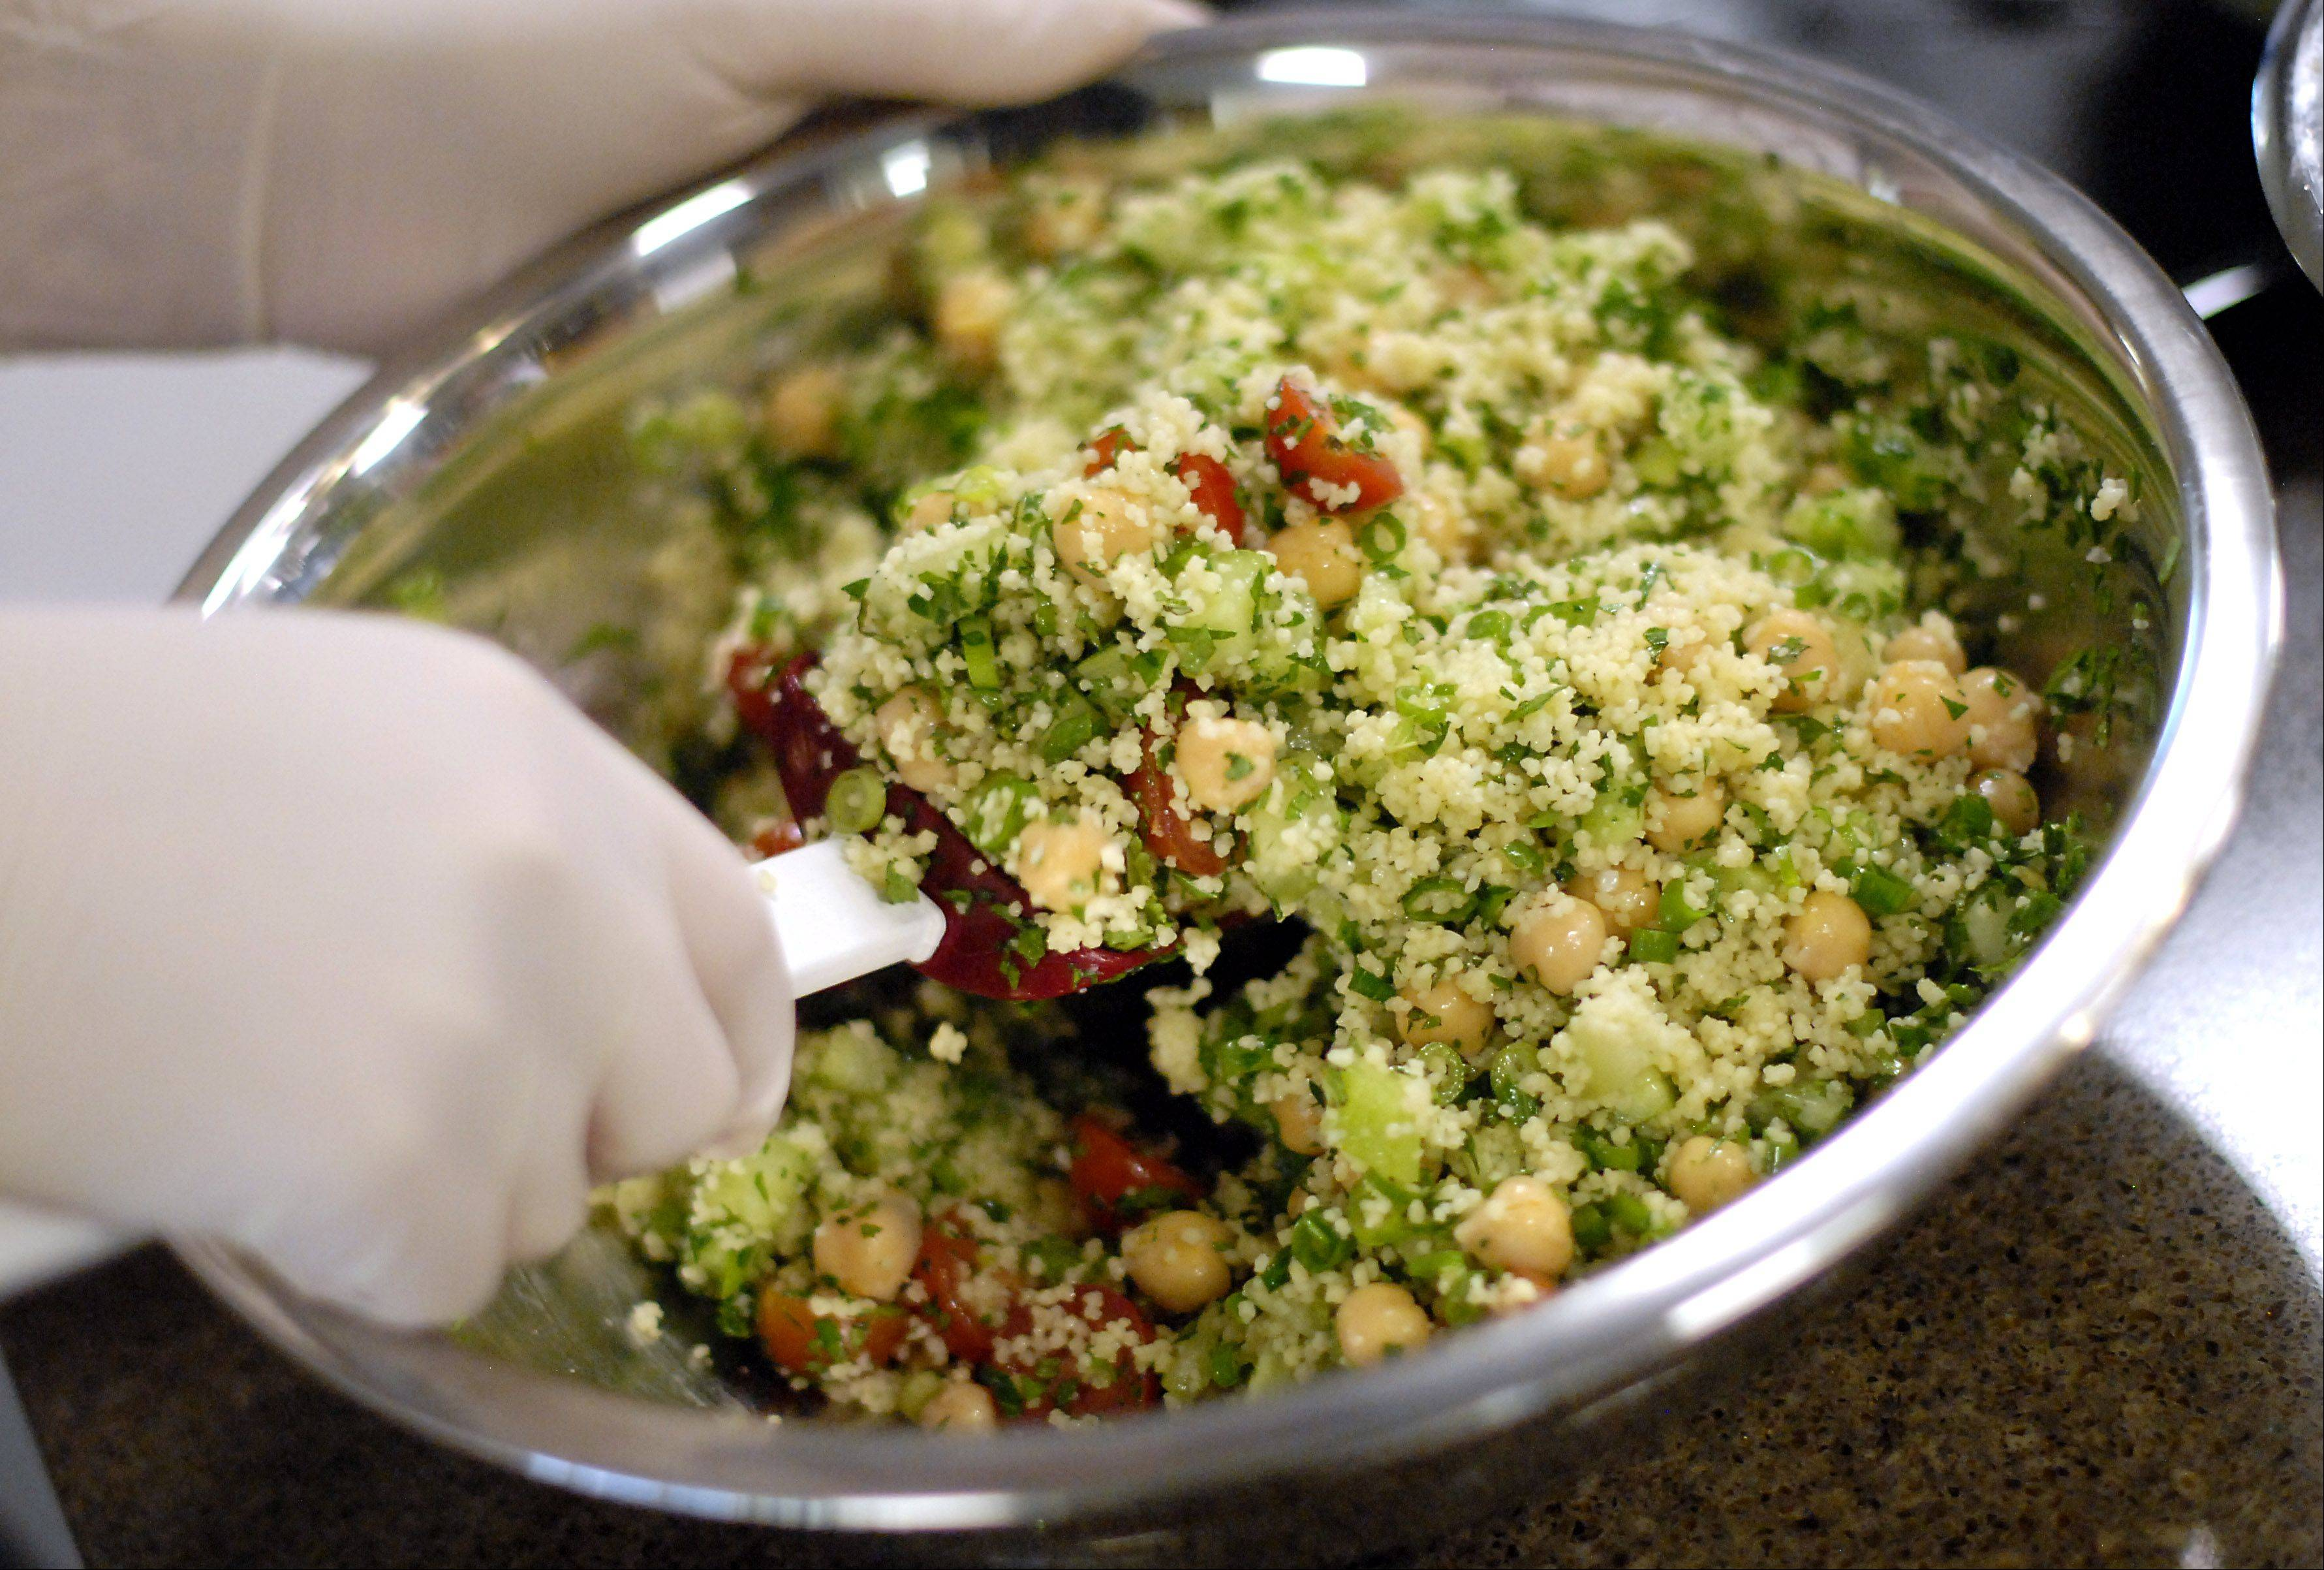 A couscous salad is mixed in the Roquette kitchen in Geneva. The meals are all plant-based, although they do include chicken or fish, and are healthy.